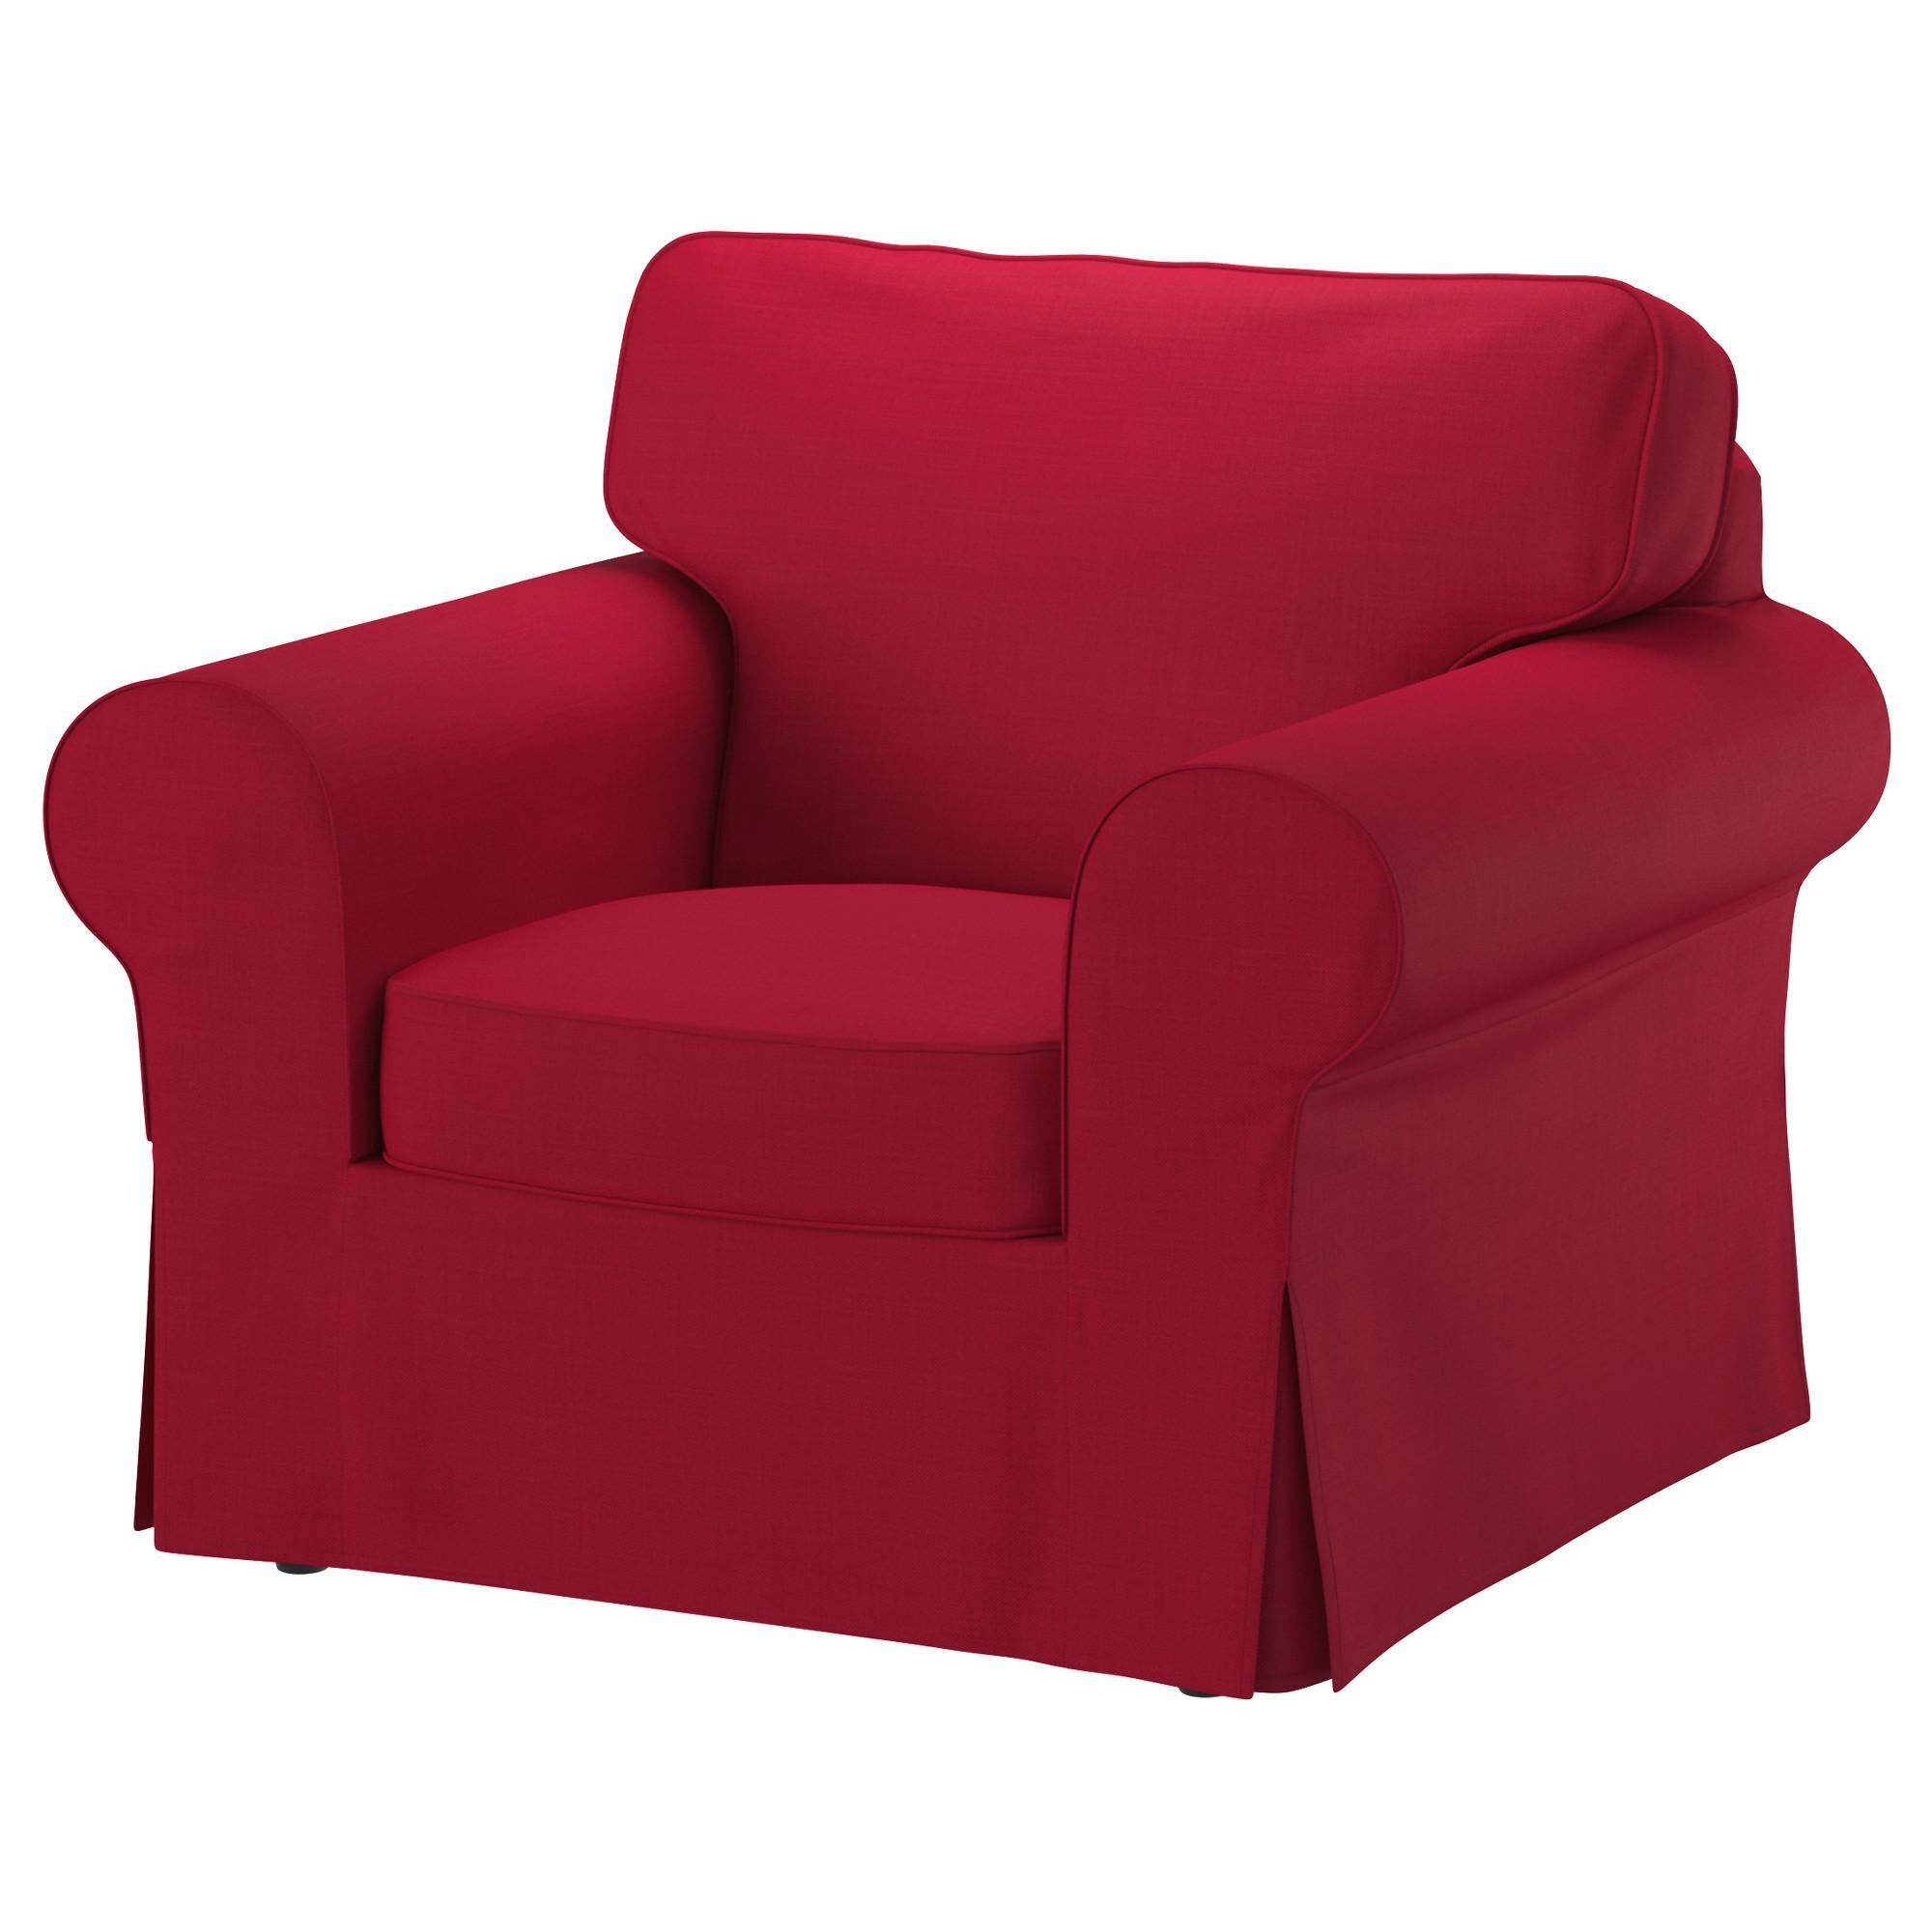 armchair sleeves commode chair walgreens 20 43 choices of sofa covers ideas